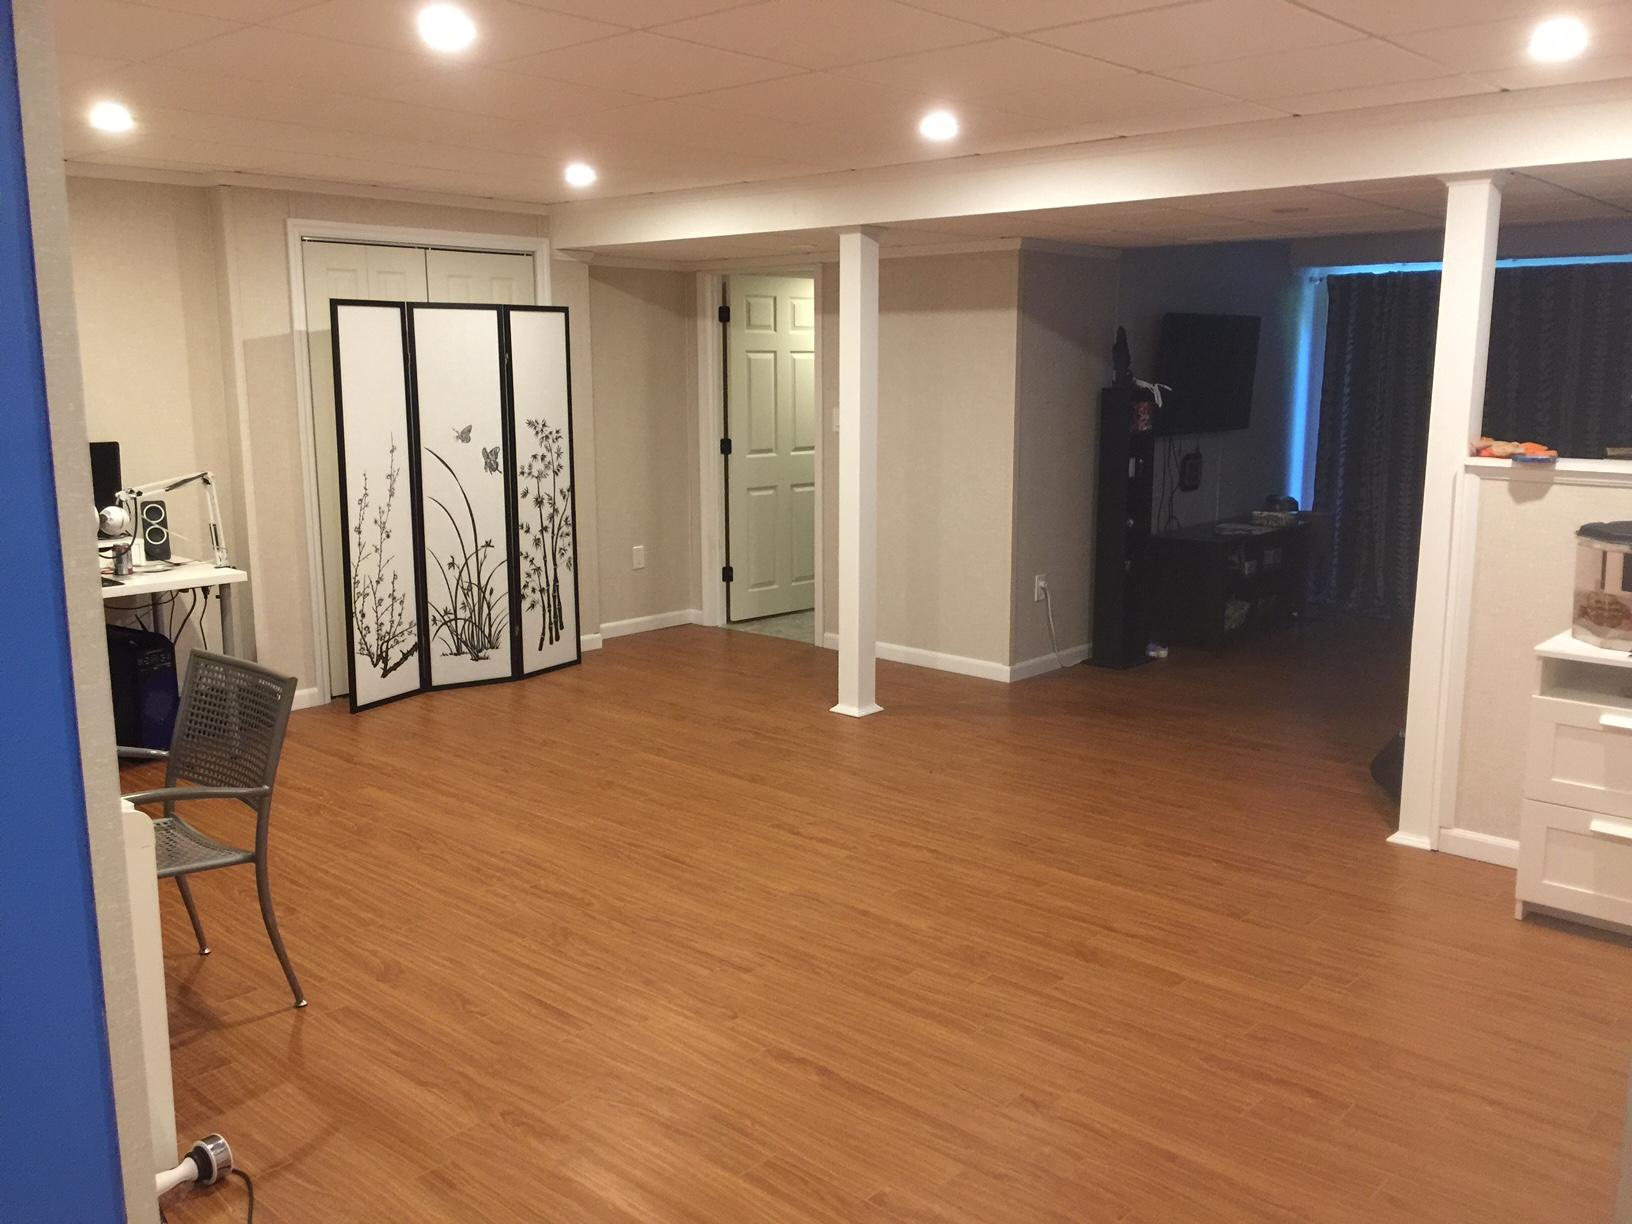 Finished Basement in Windham - After Photo